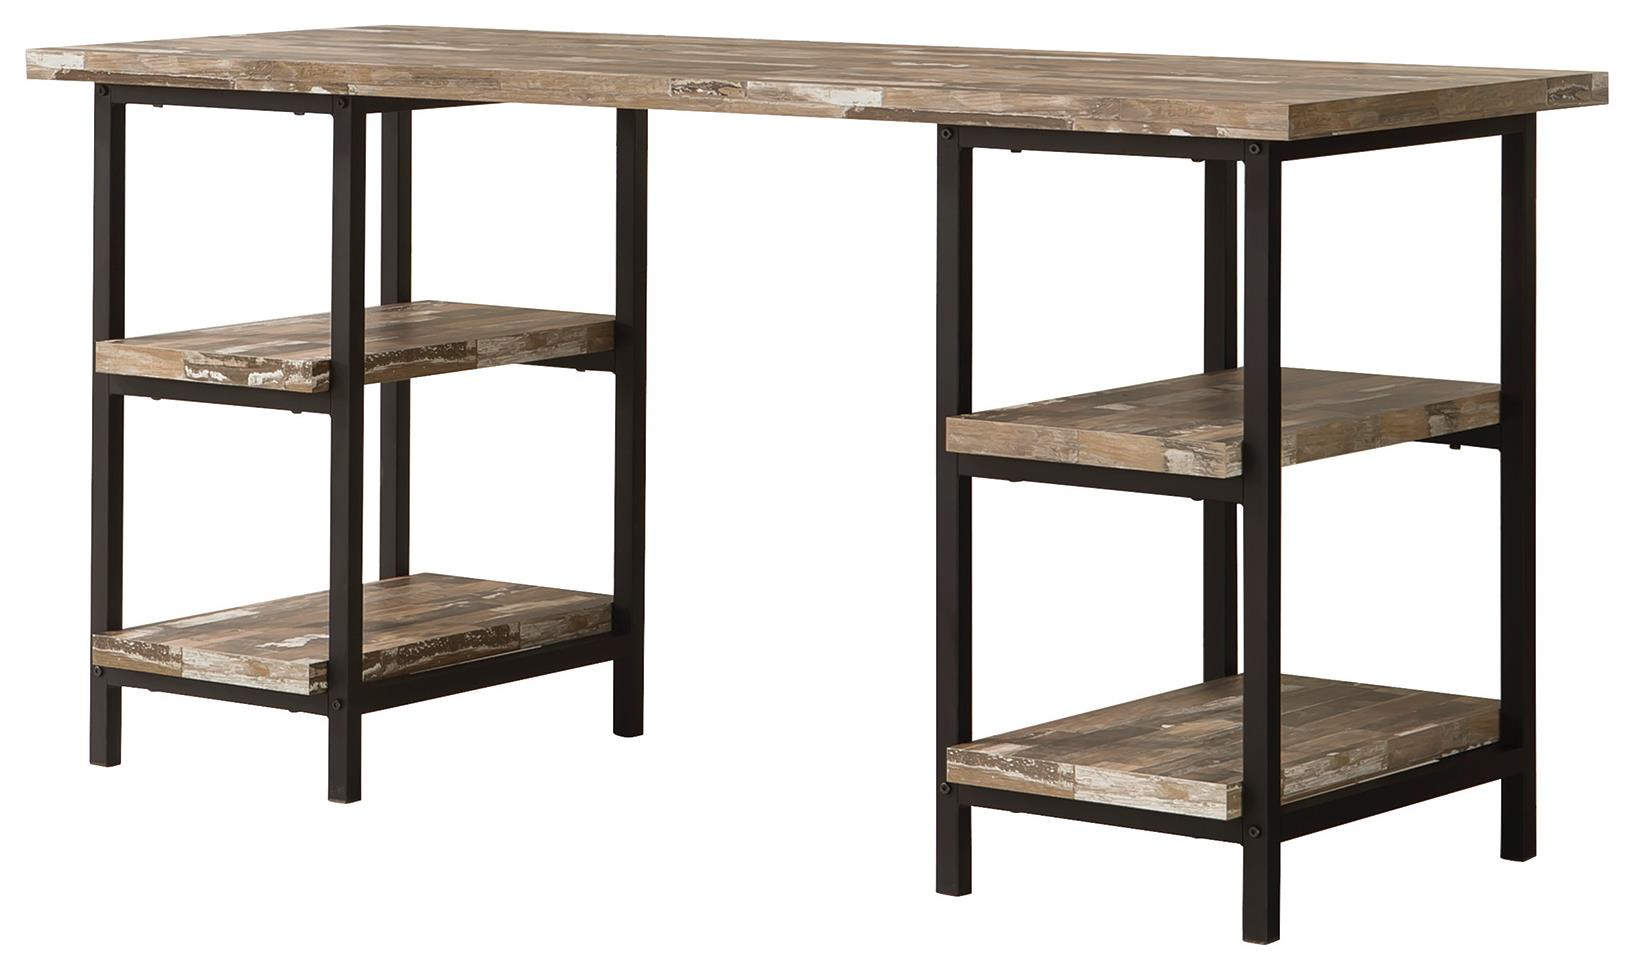 Skelton Writing Desk by Coaster at Northeast Factory Direct